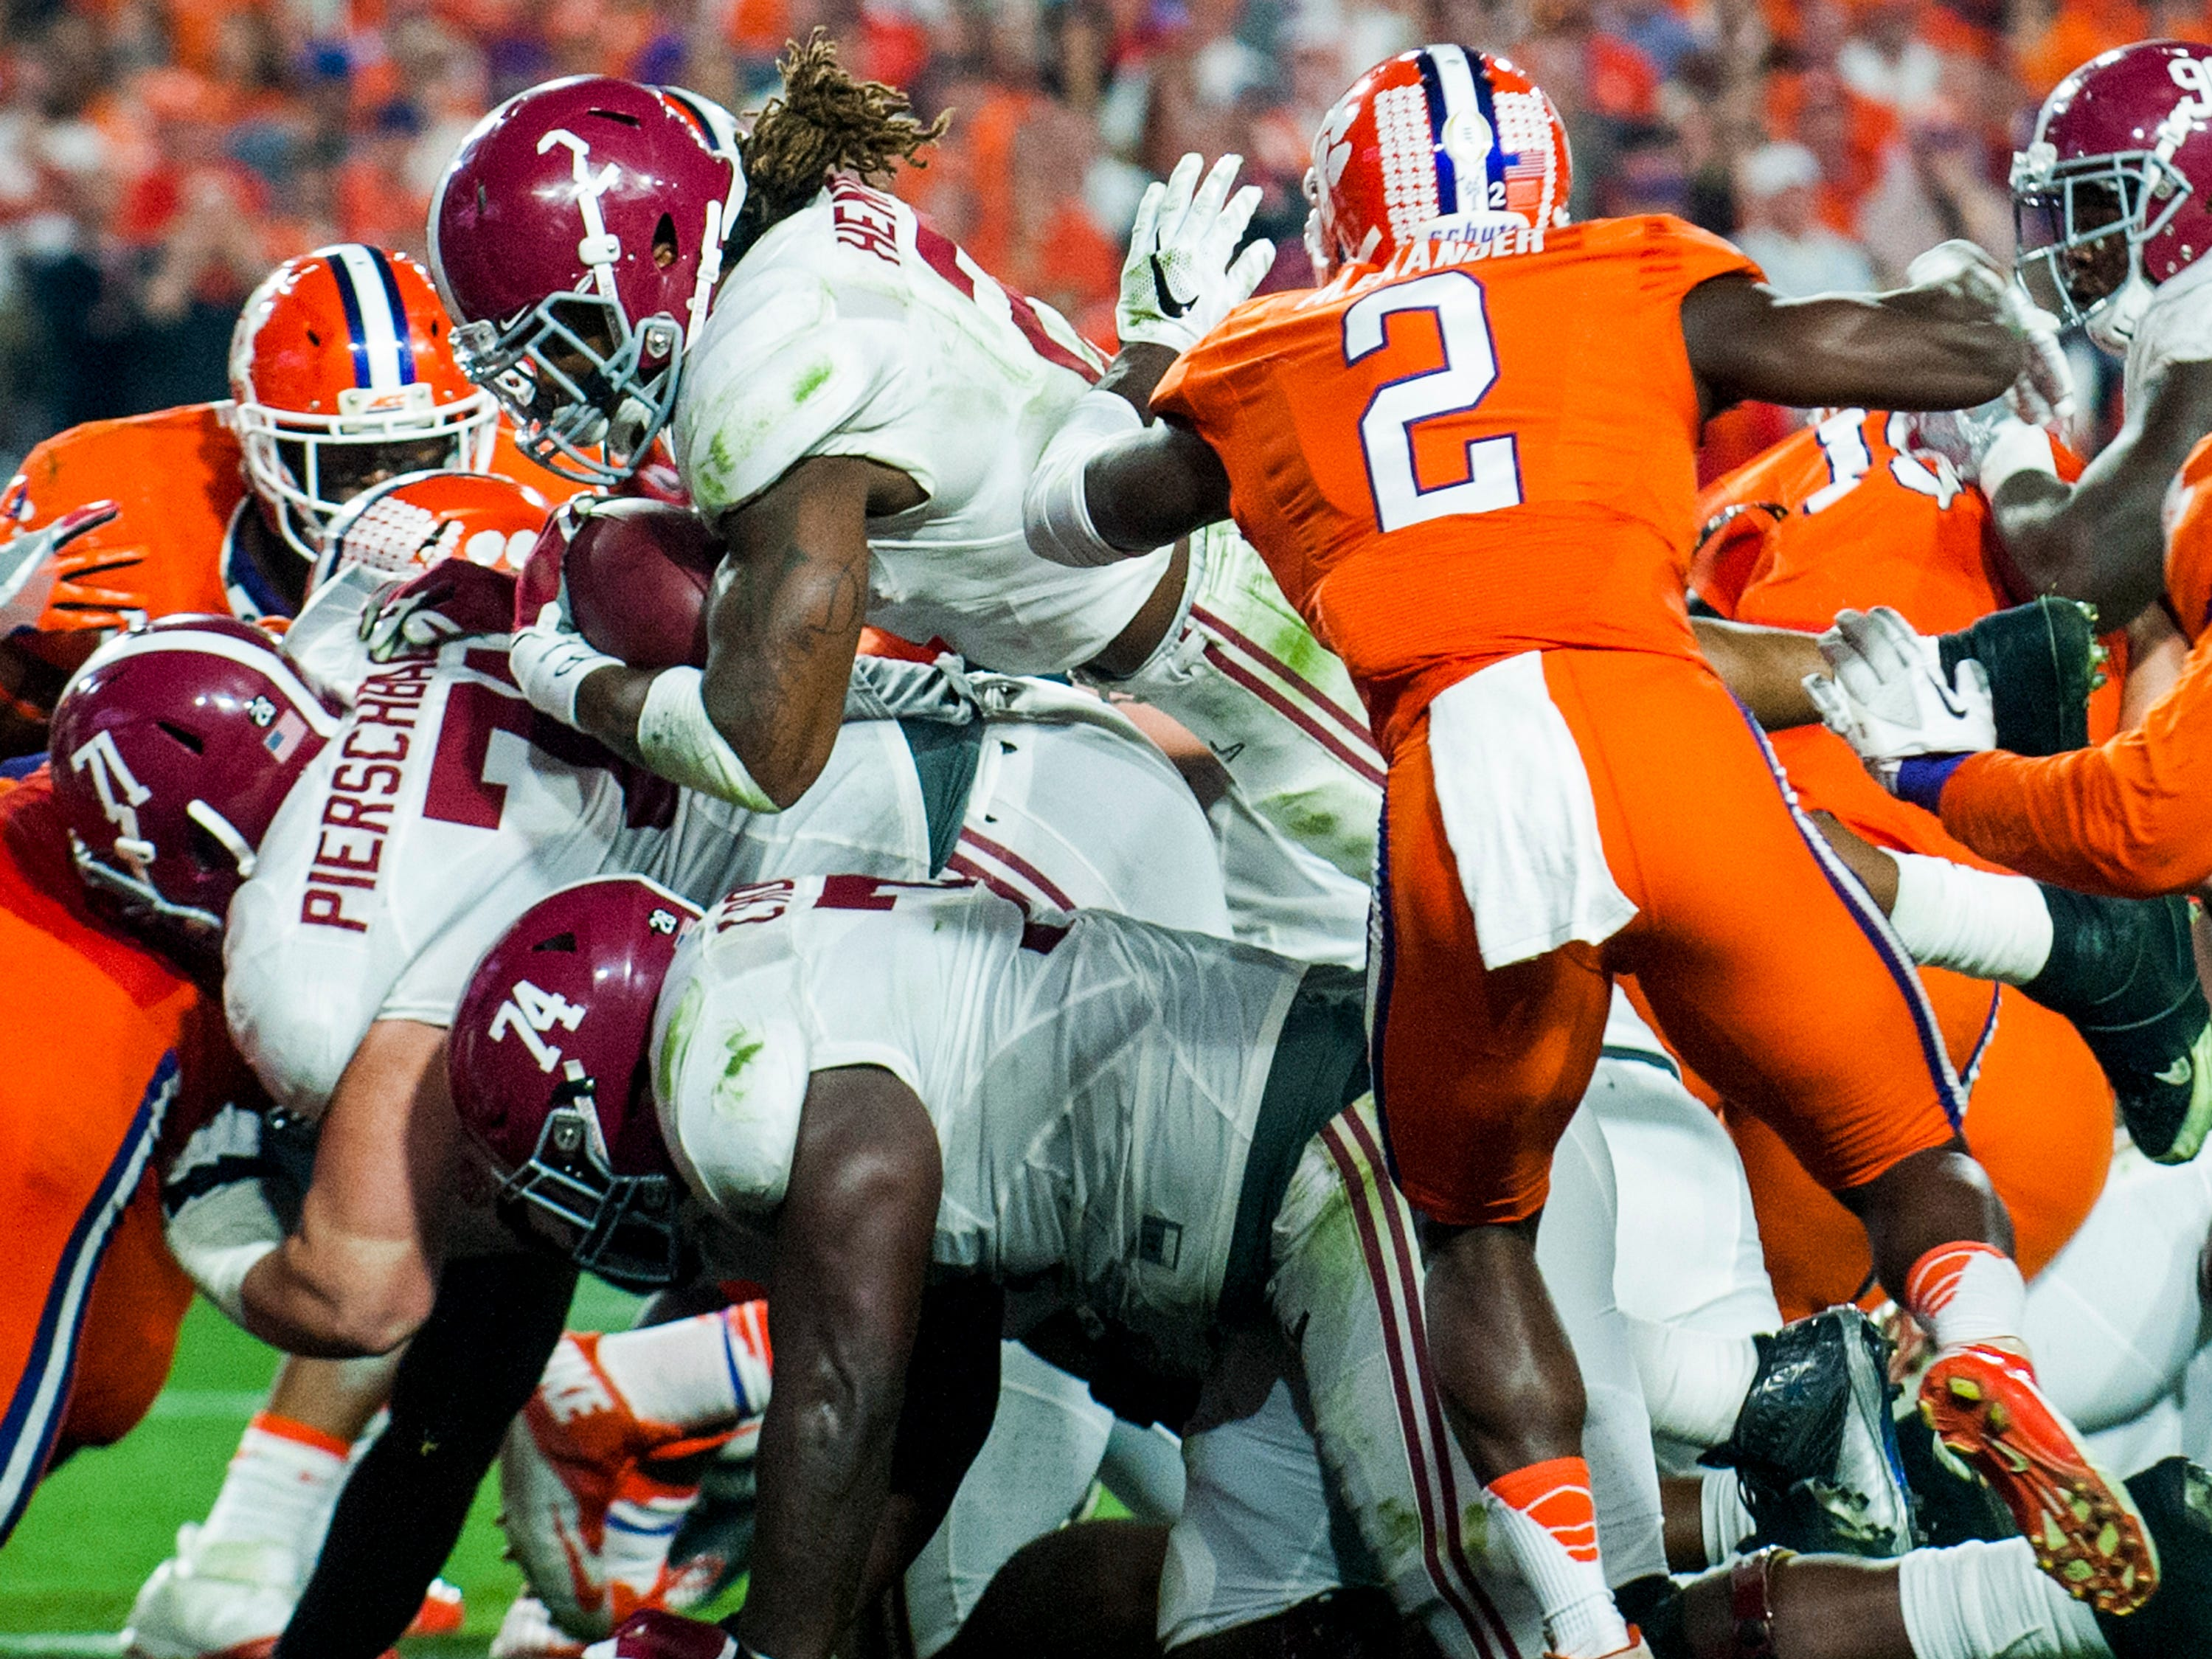 Alabama running back Derrick Henry (2) dives in for a second quarter touchdown against Clemson in the College Football Playoff Championship Game on Monday January 11, 2016 at University of Phoenix Stadium in Glendale, Az.